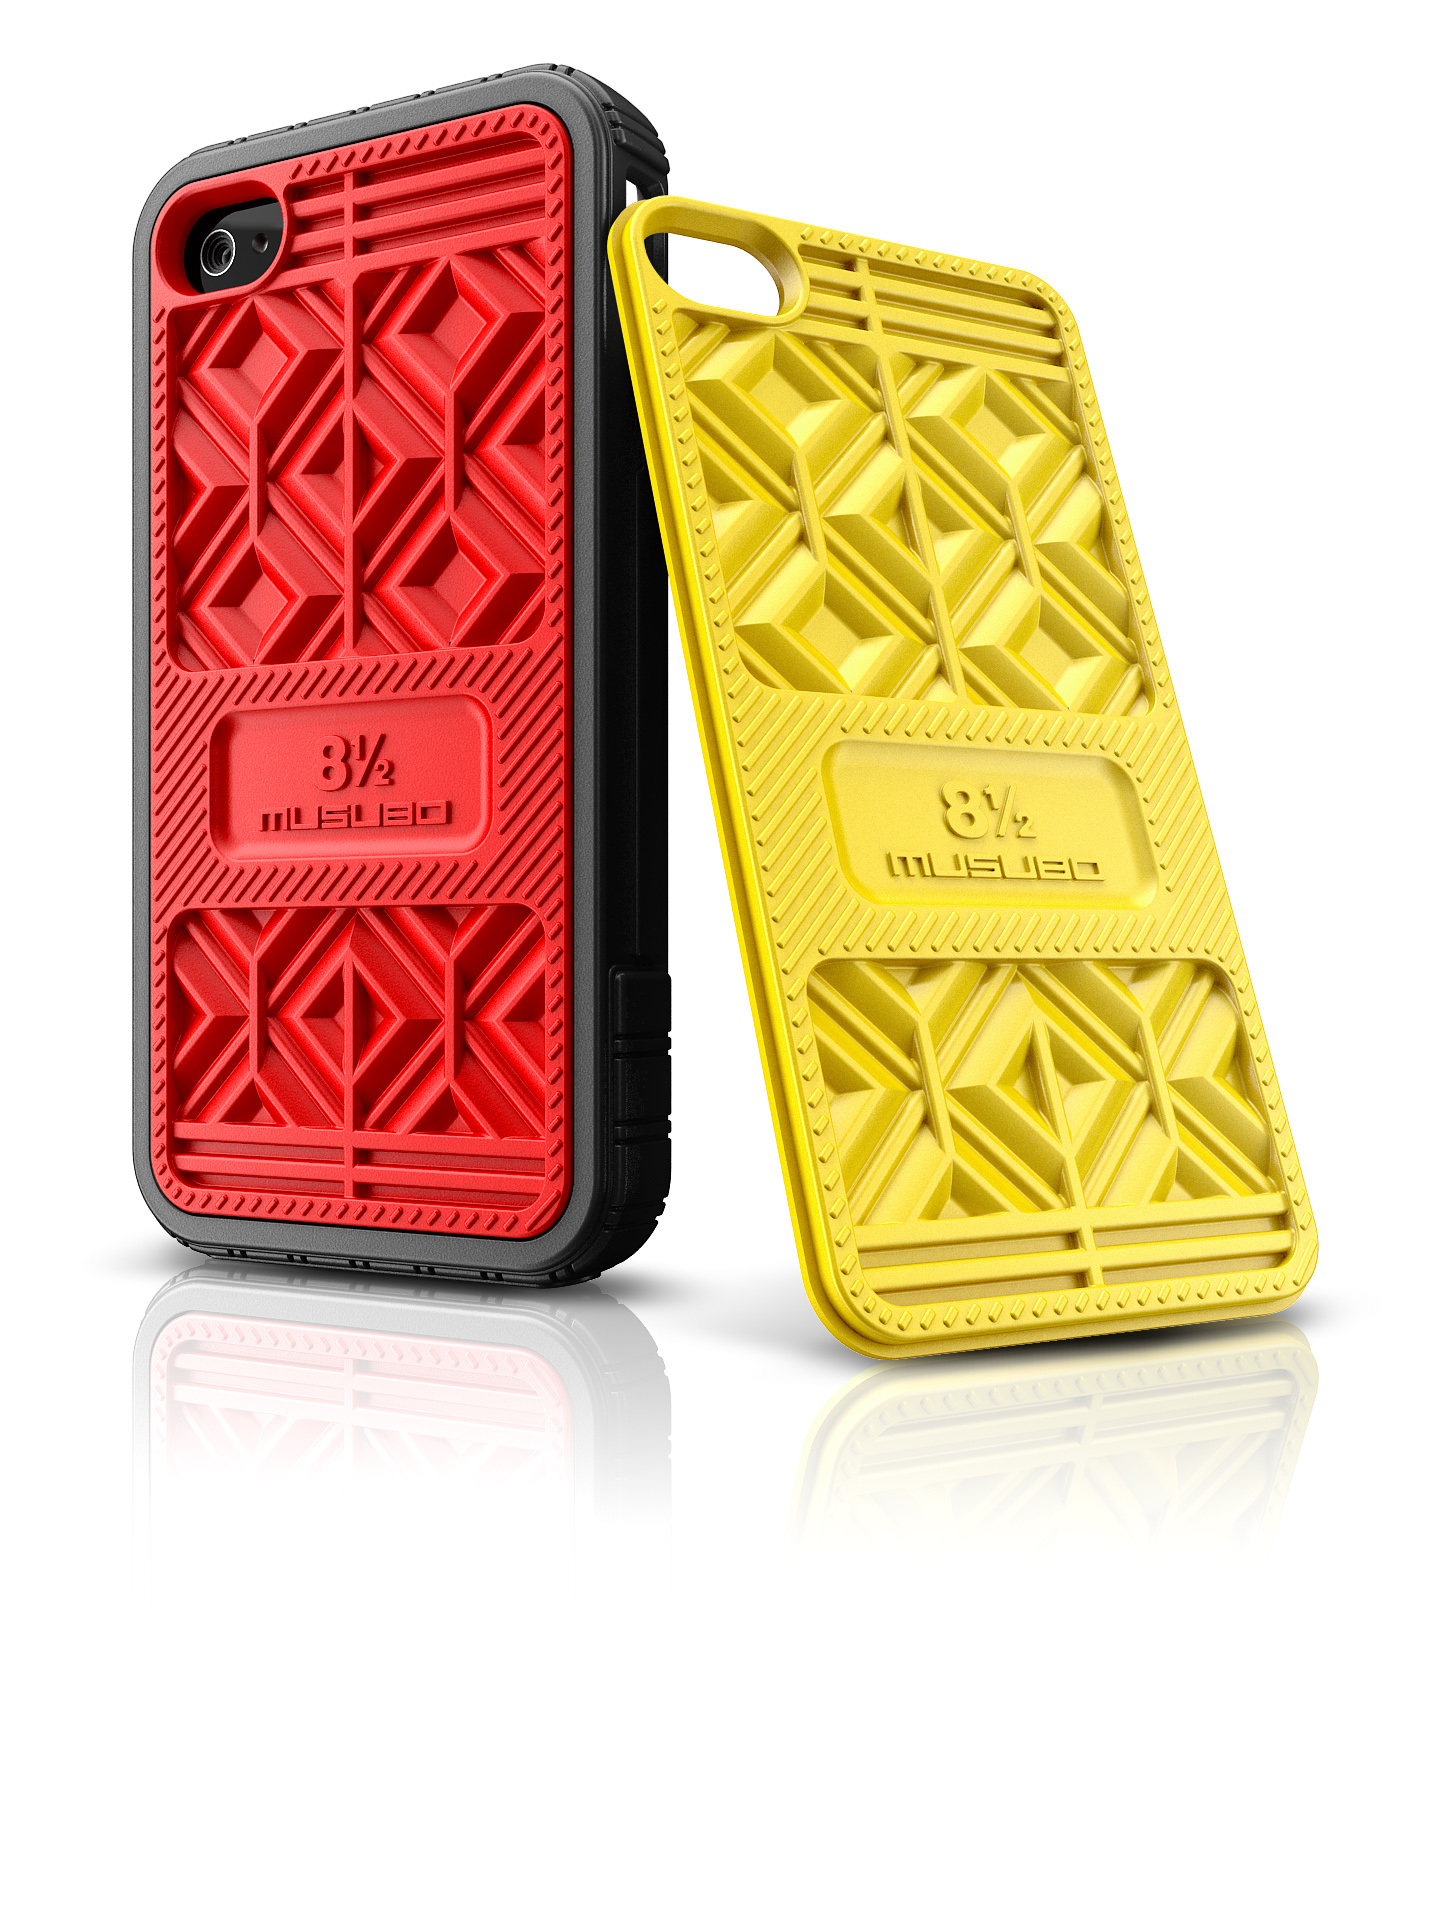 original-musubo-case-sneaker-iphone-4s4g-red-yellow-retail